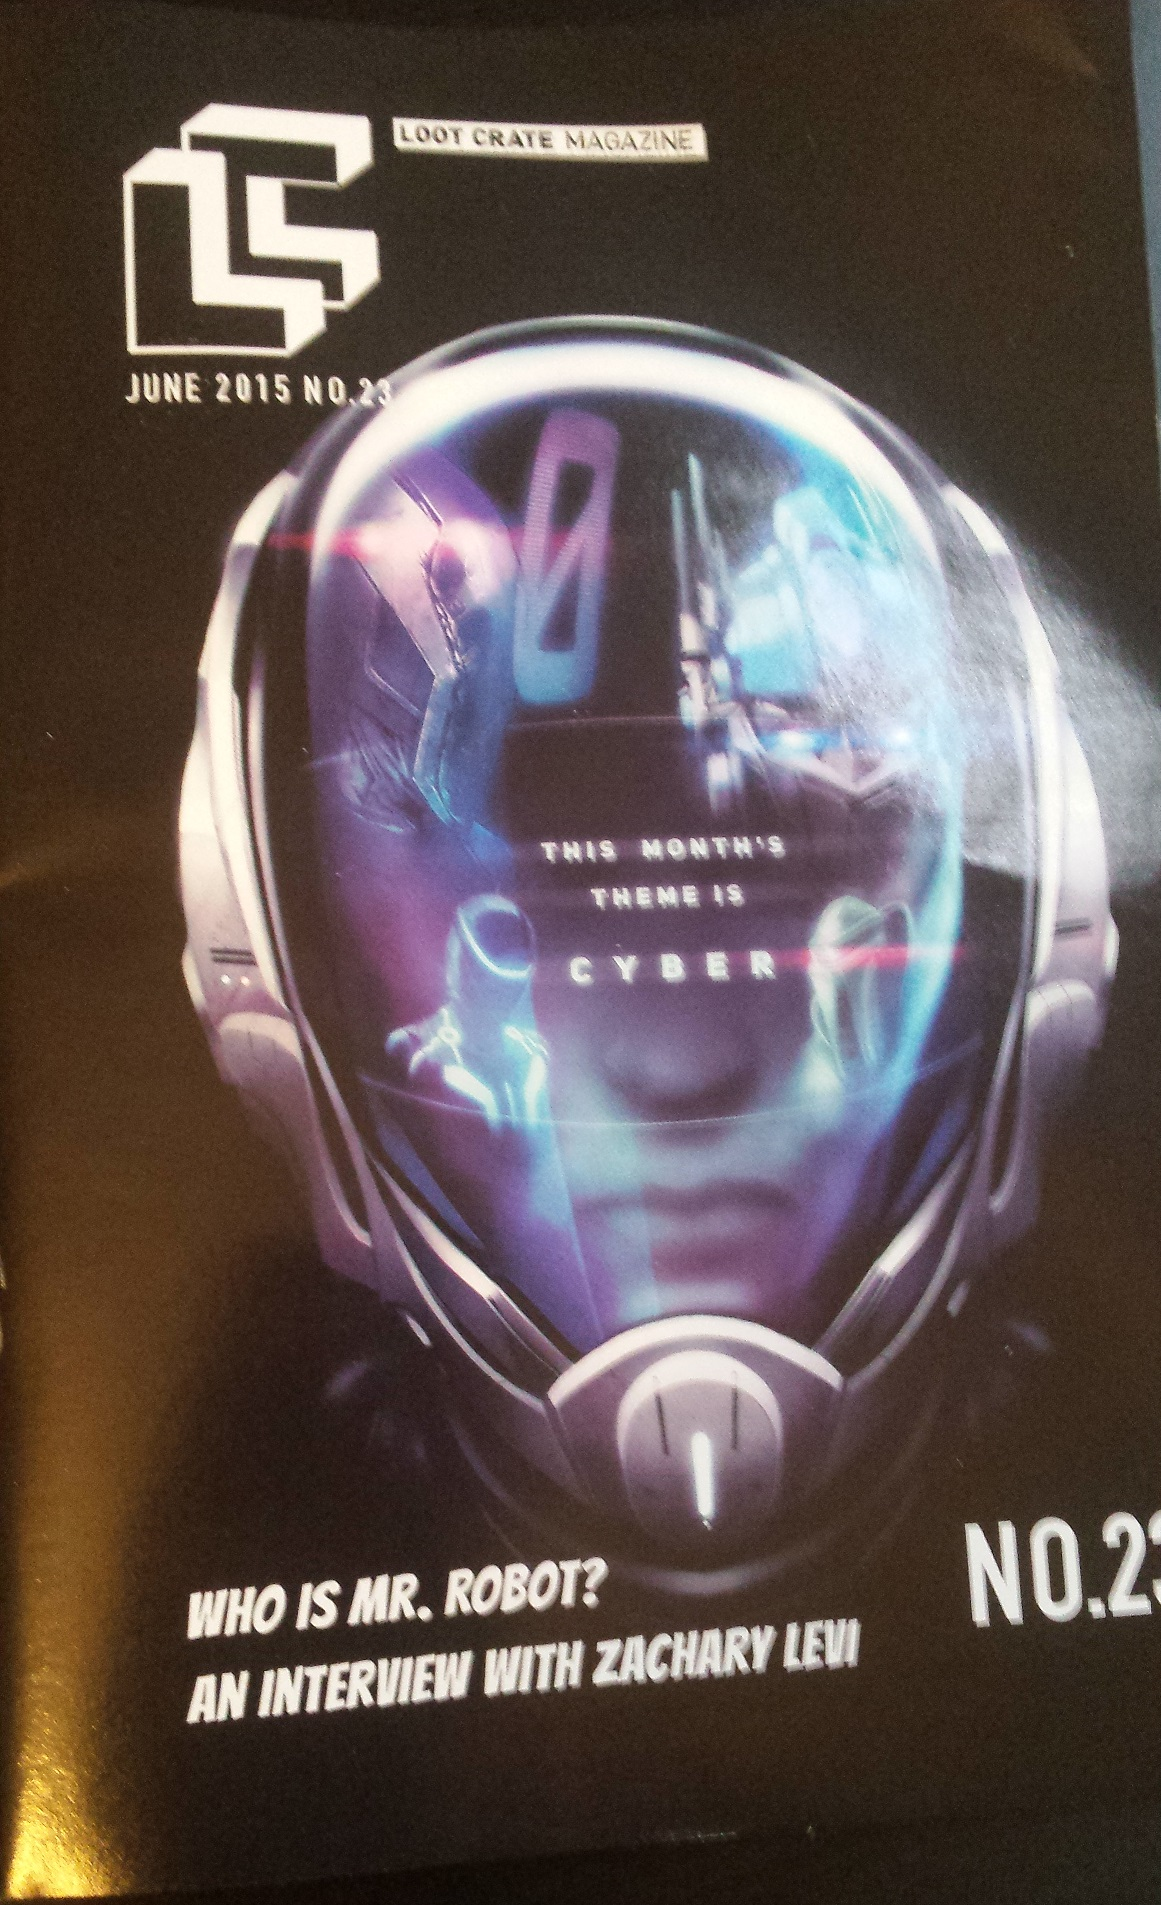 Cyber themed loot crate magazine